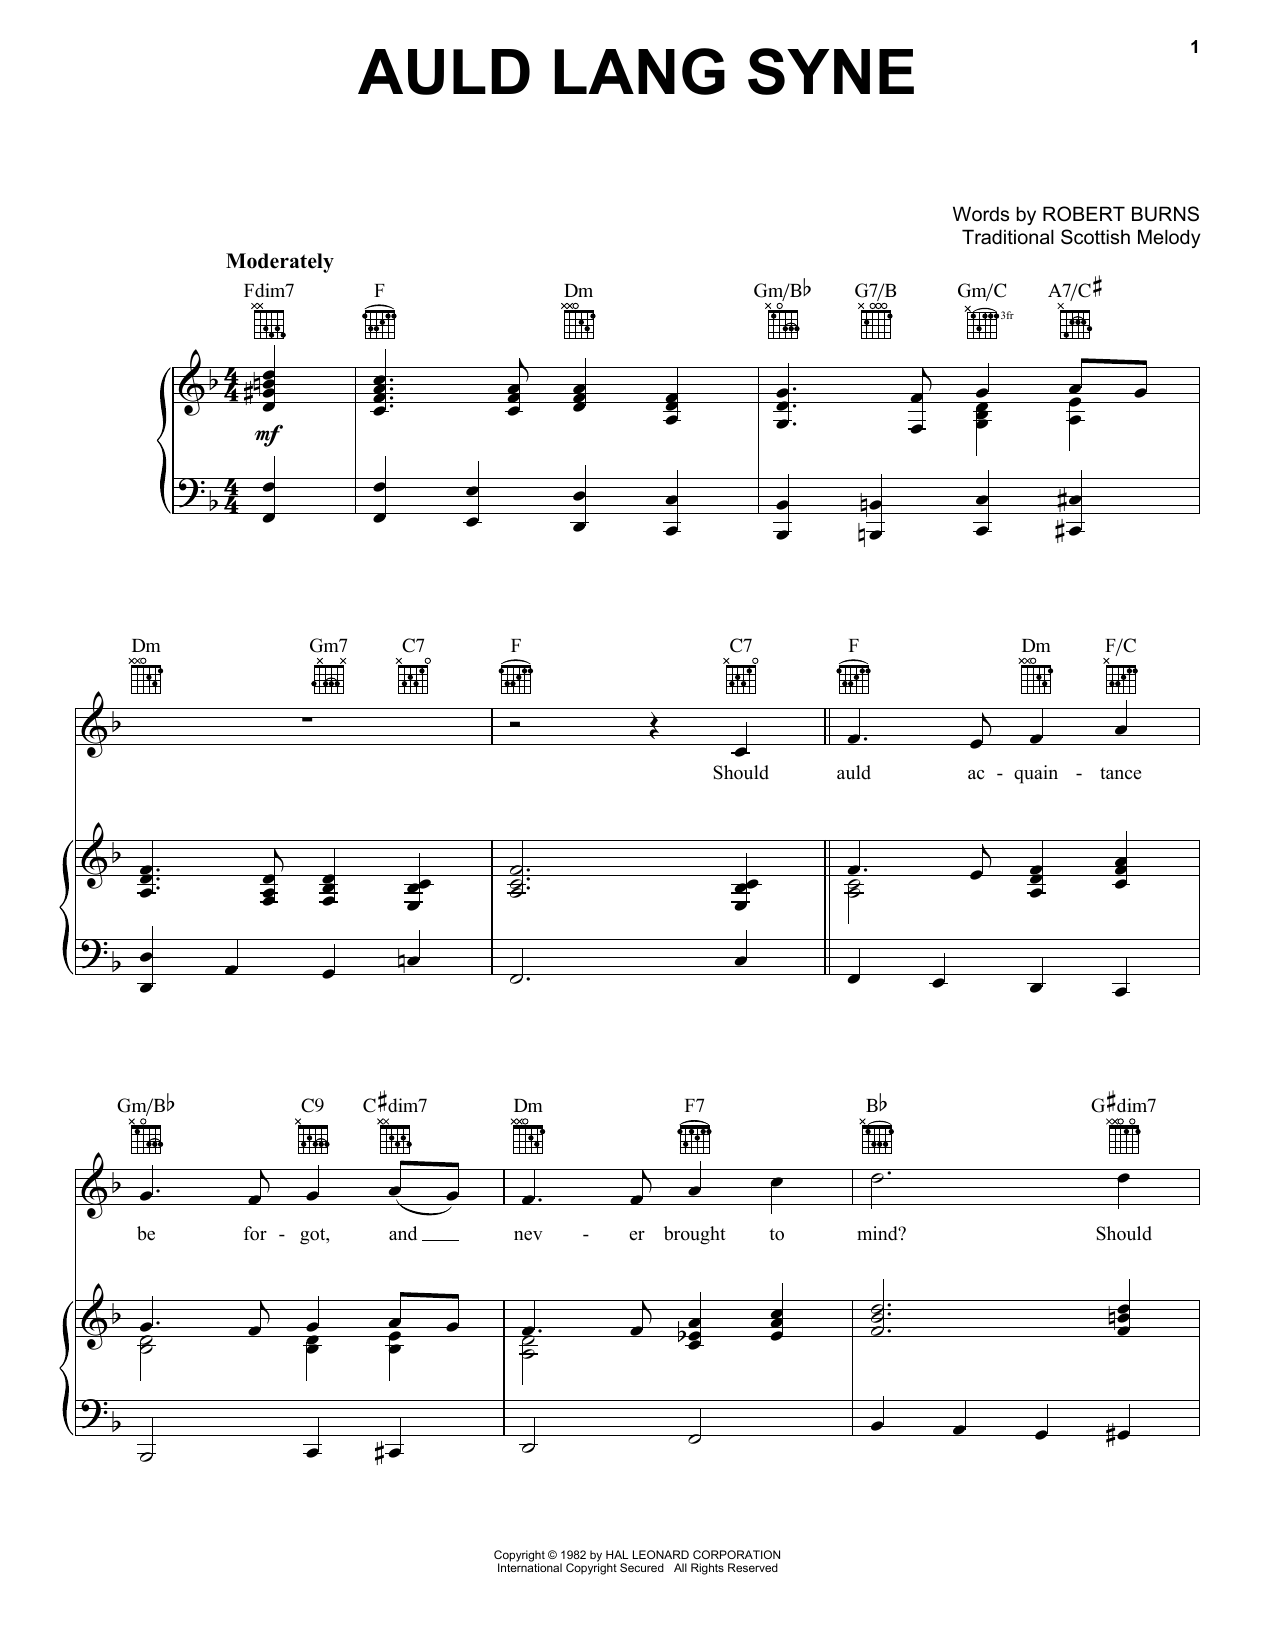 Auld Lang Syne sheet music by Robert Burns (Piano, Vocal u0026 Guitar (Right-Hand Melody) u2013 16526)